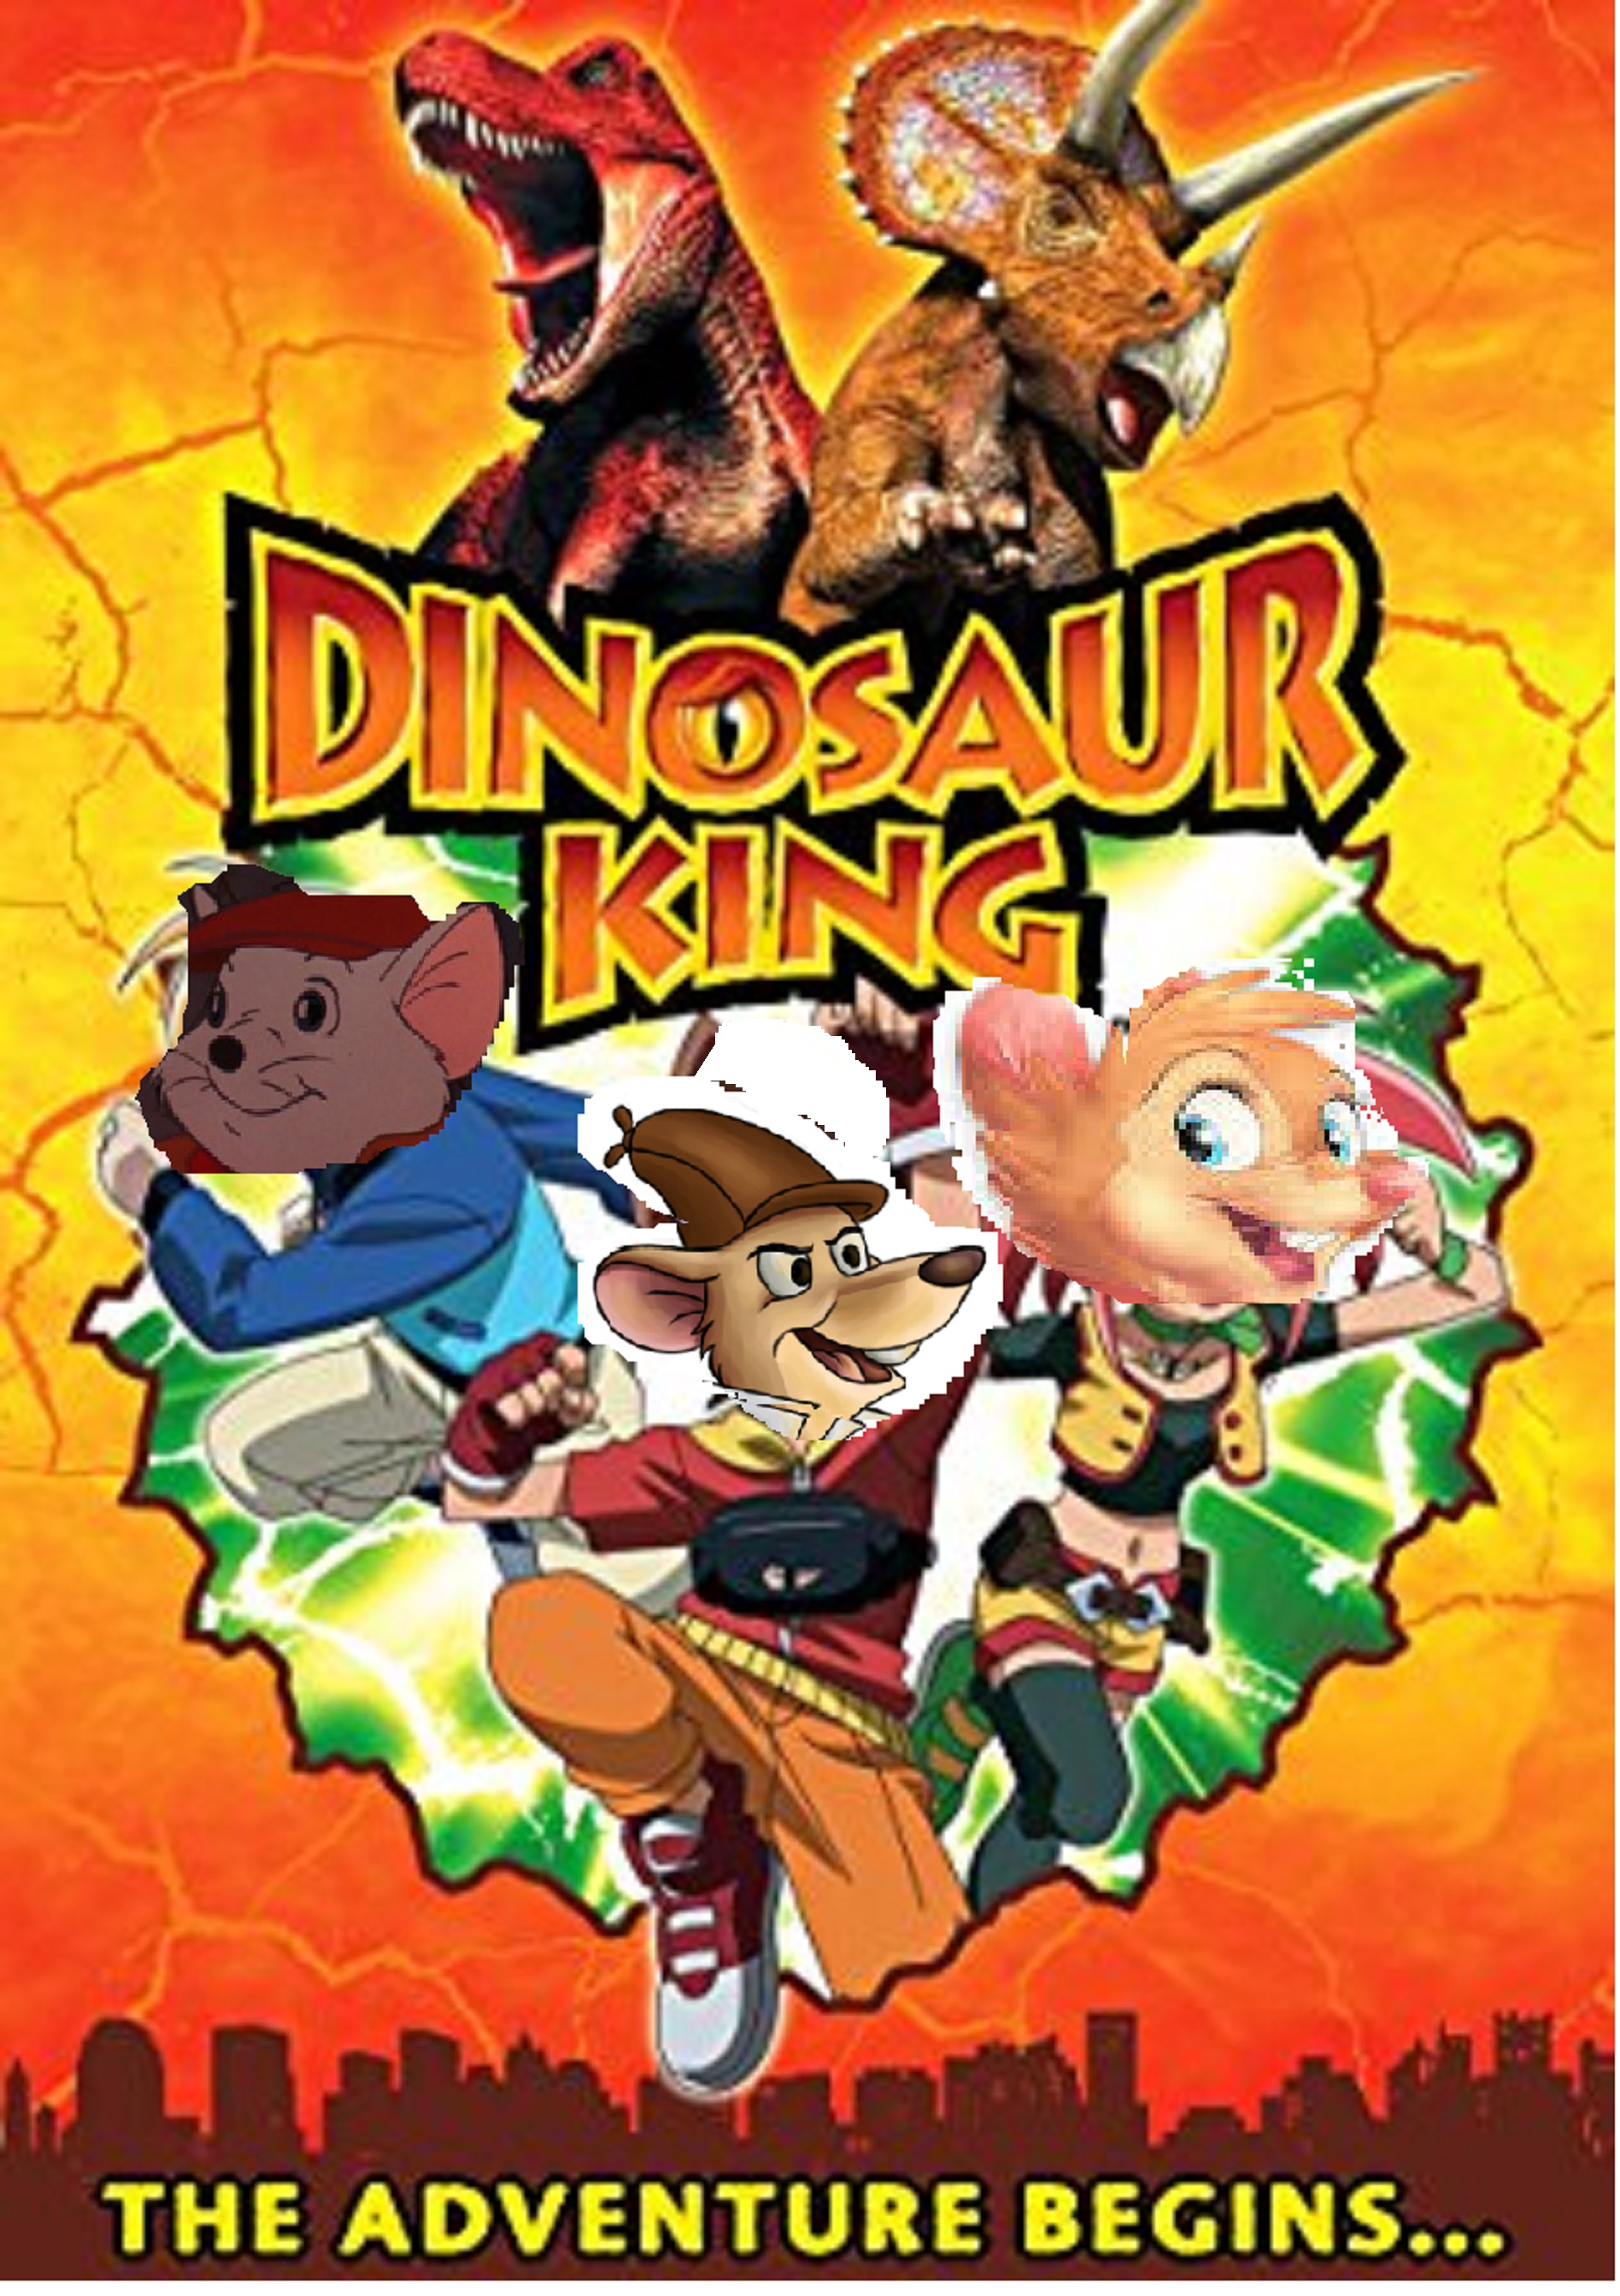 Dinosaur King (Chris1702 Animal Style)